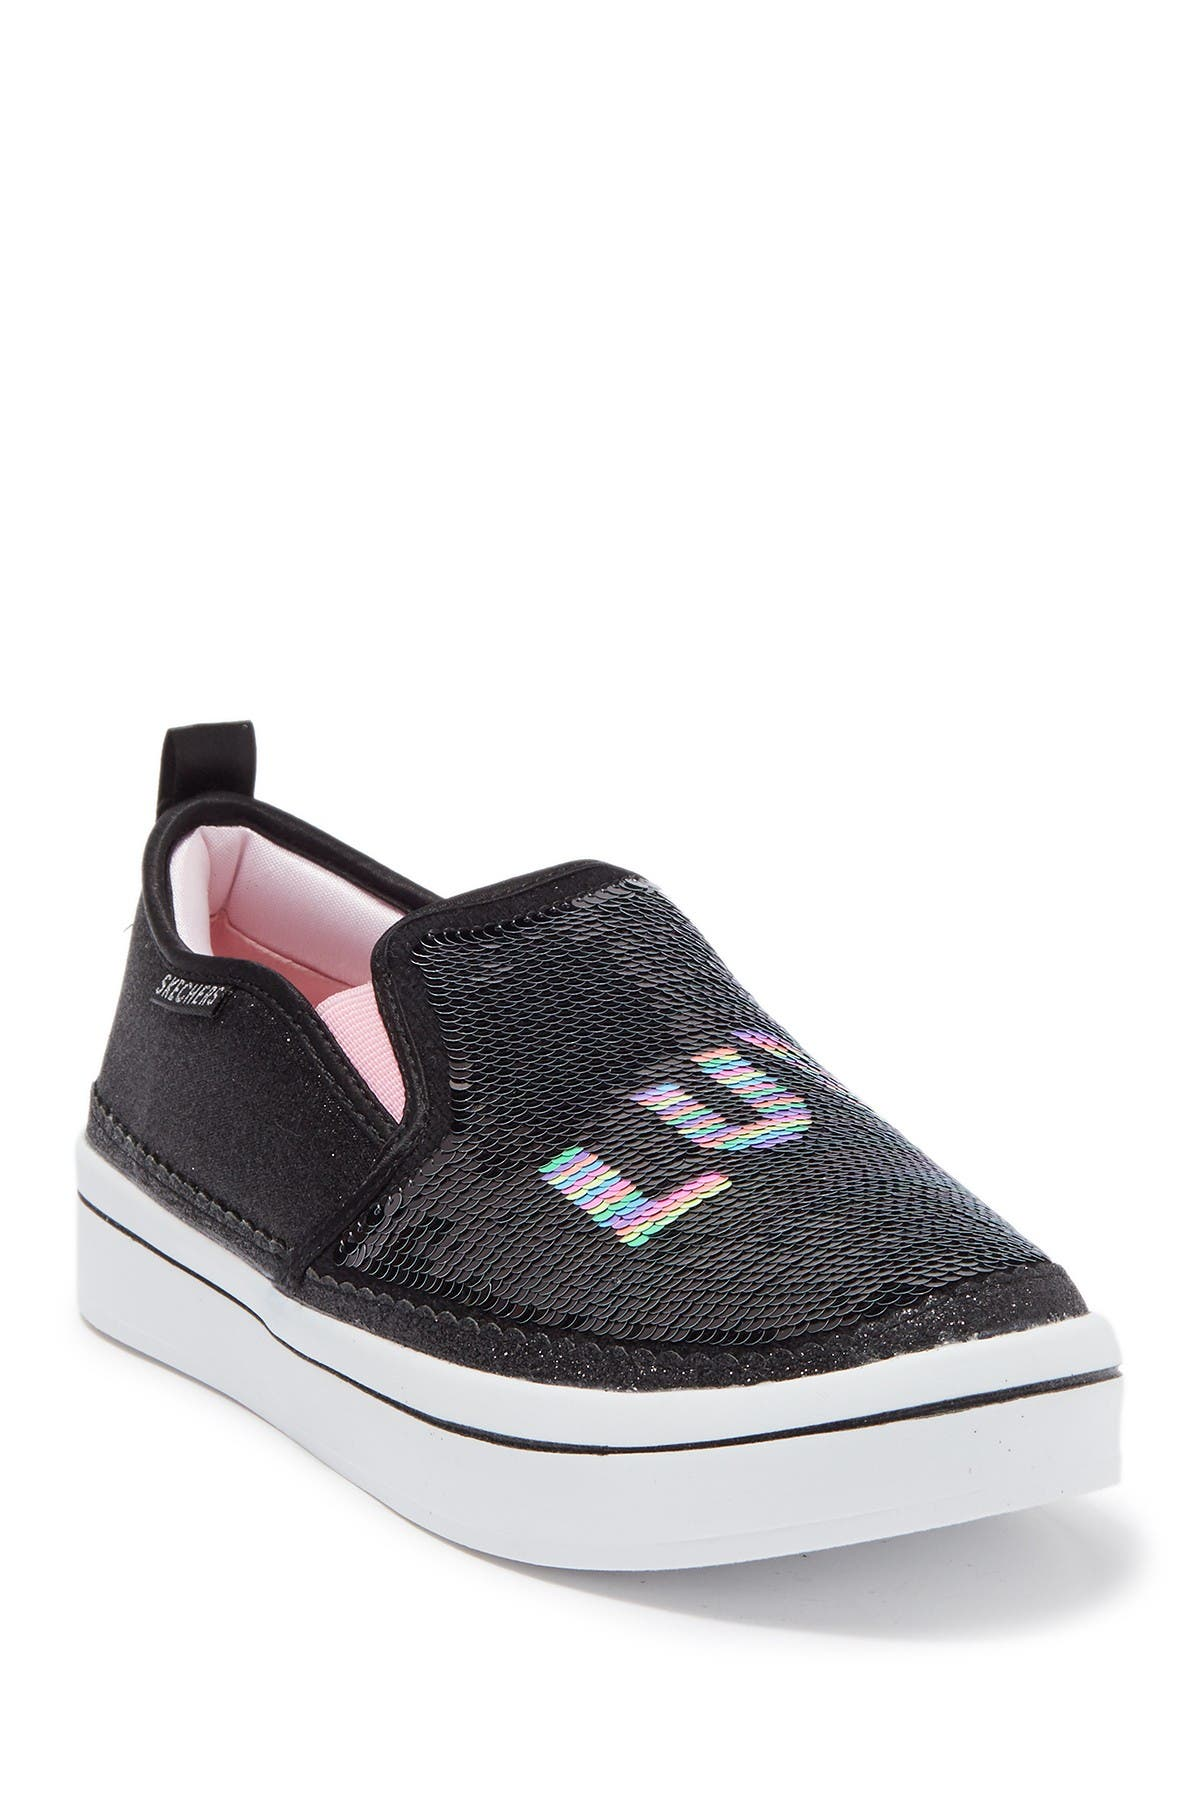 Image of Skechers Twi-Lites 2.0 Sequined Sneaker